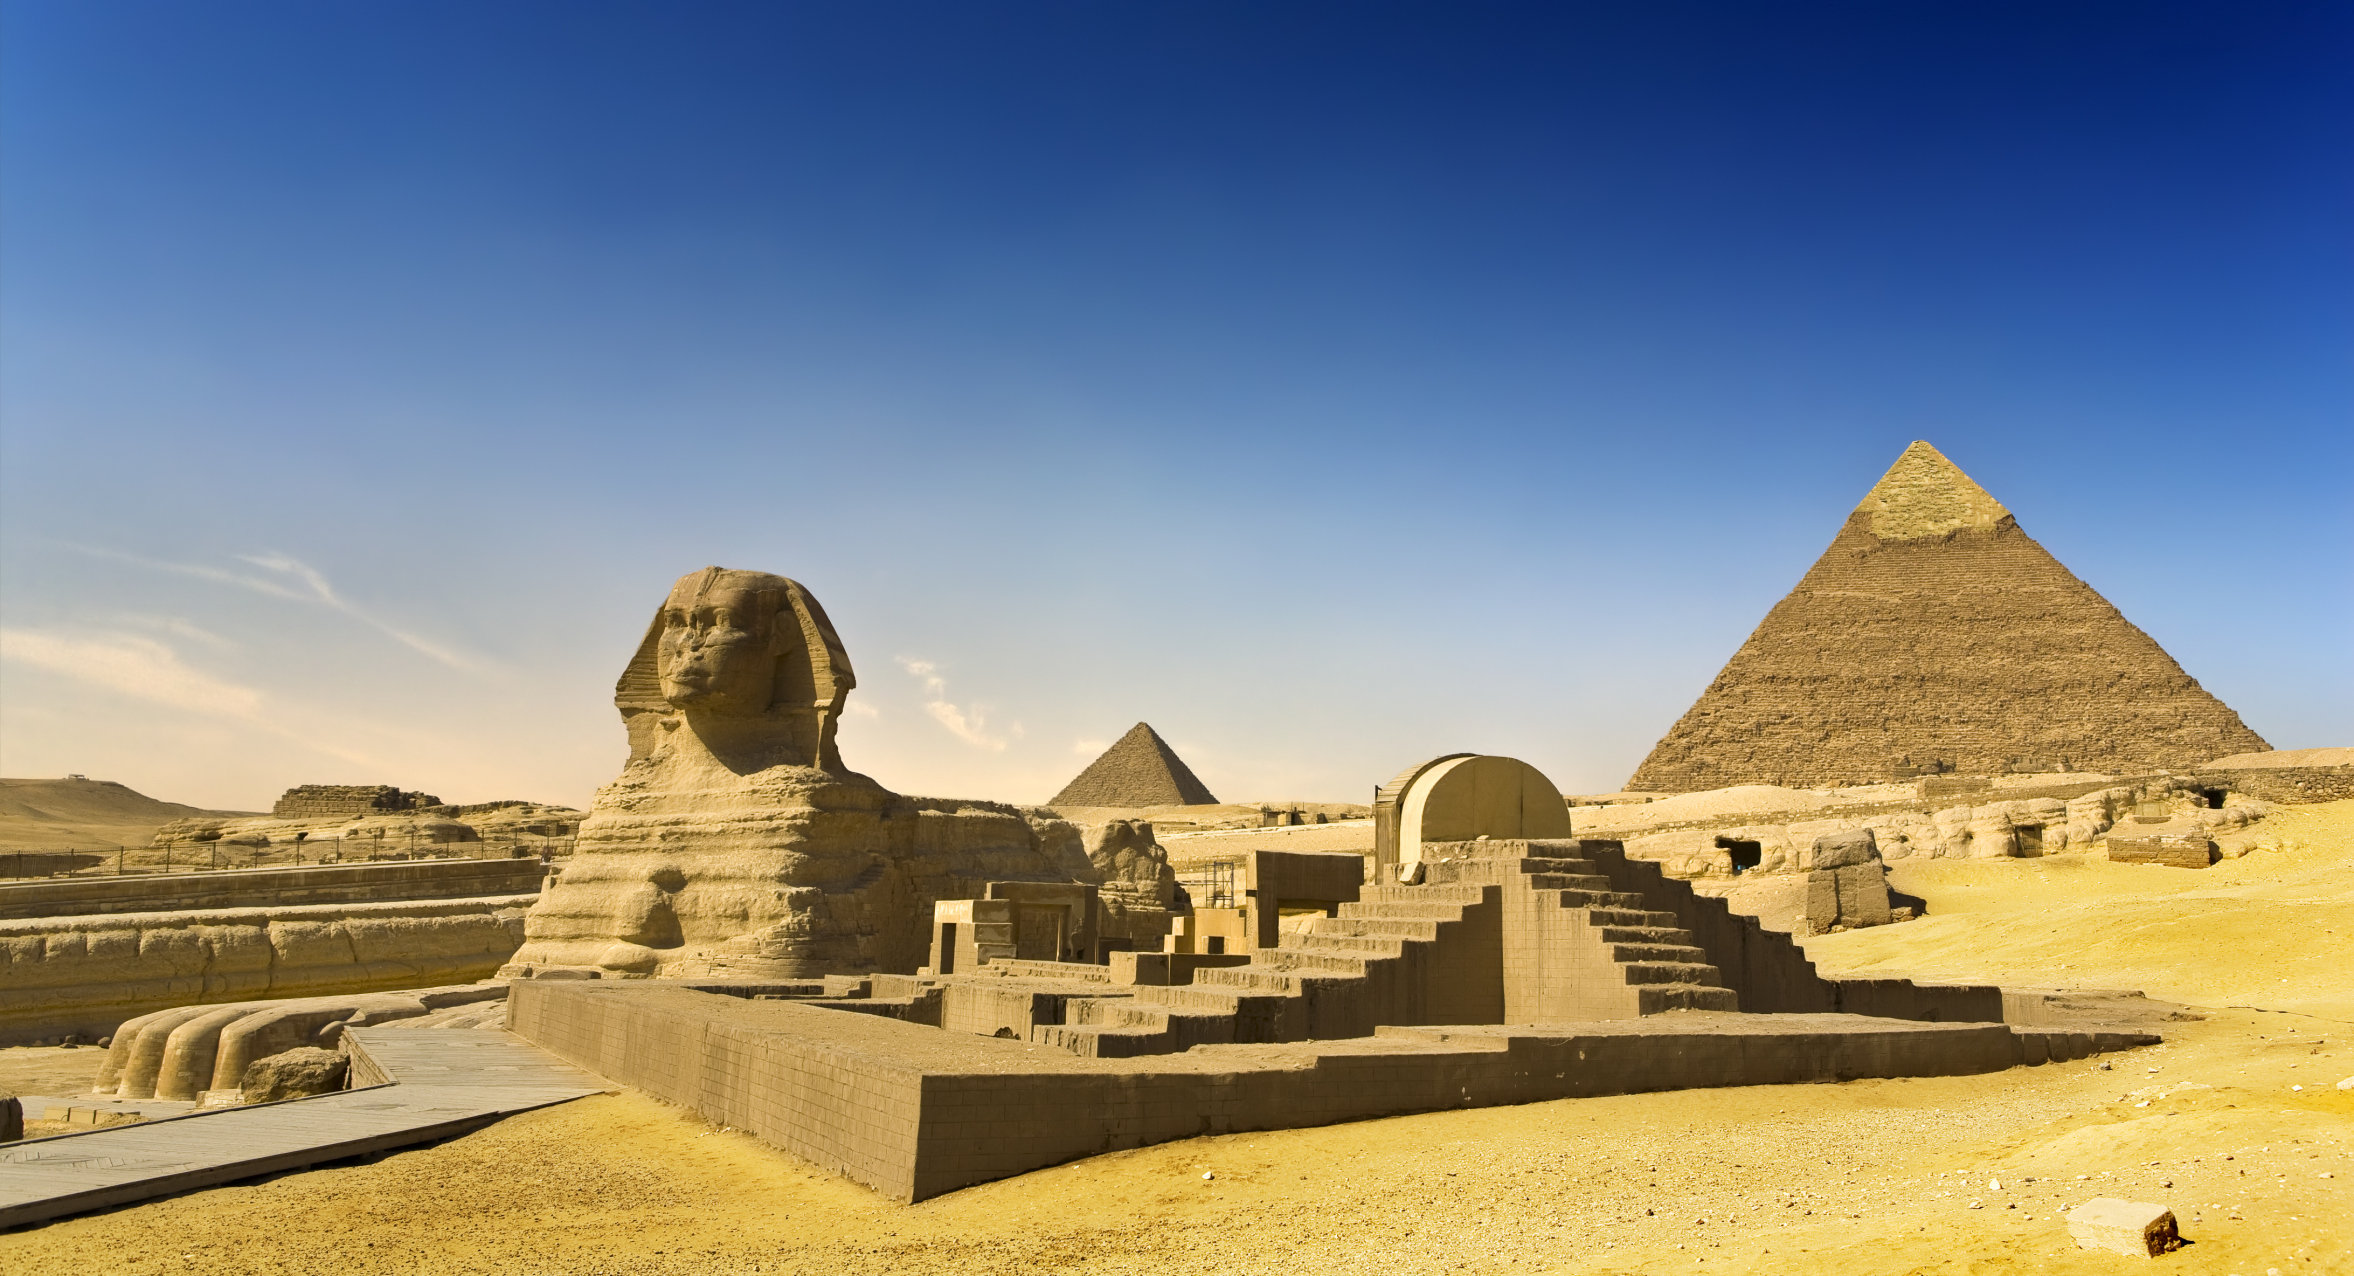 fossil suggests egyptian pyramids and sphinx once submerged under